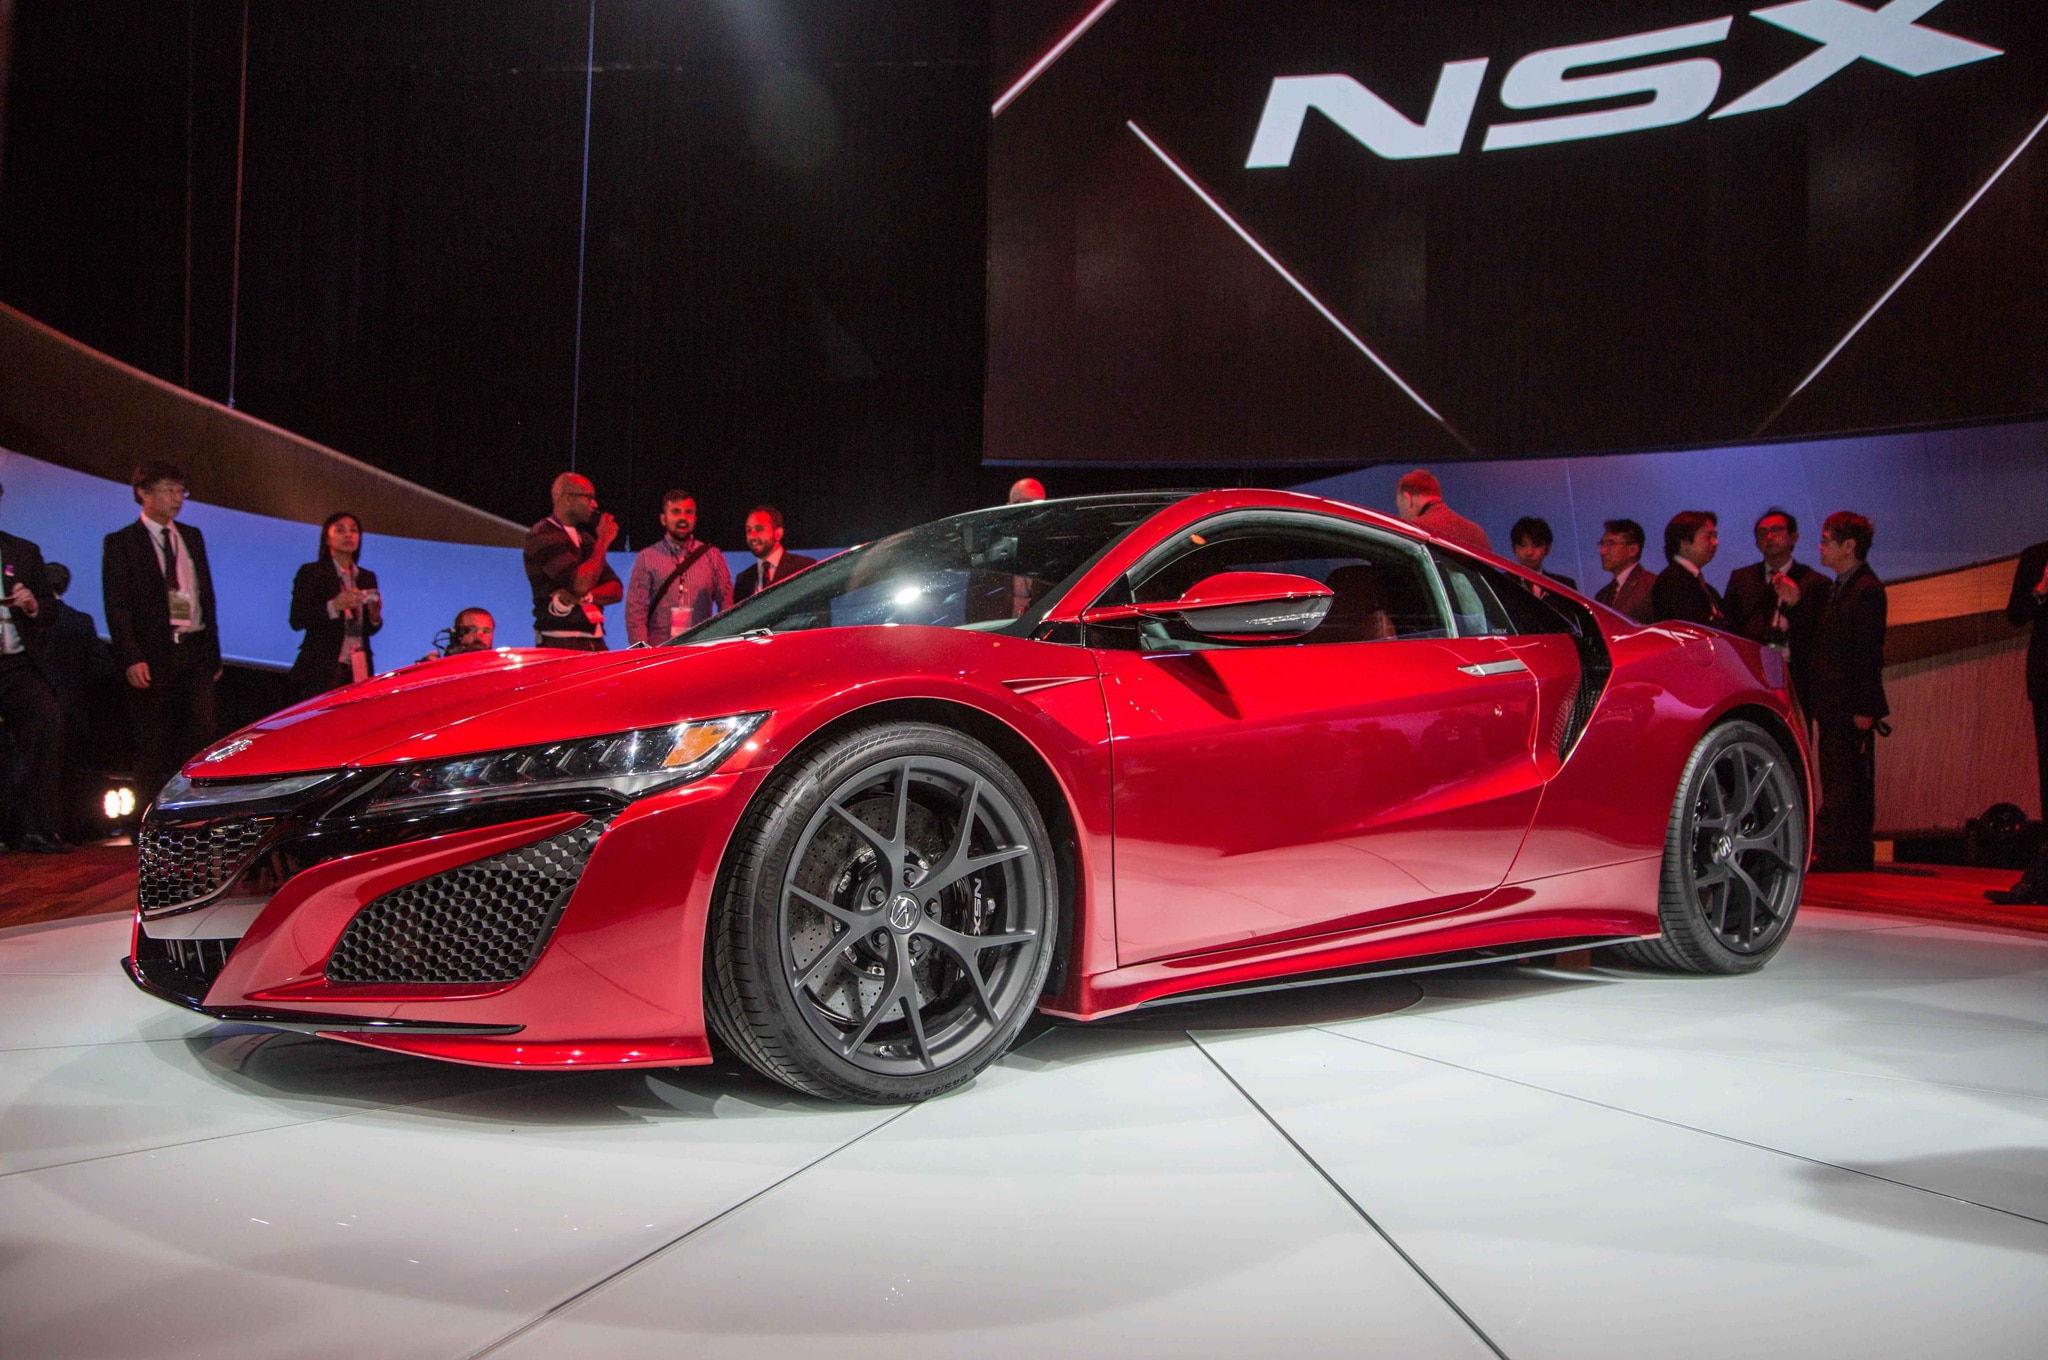 2016 Acura Nsx Shows Its Fierce New 550 Hp Face In Detroit